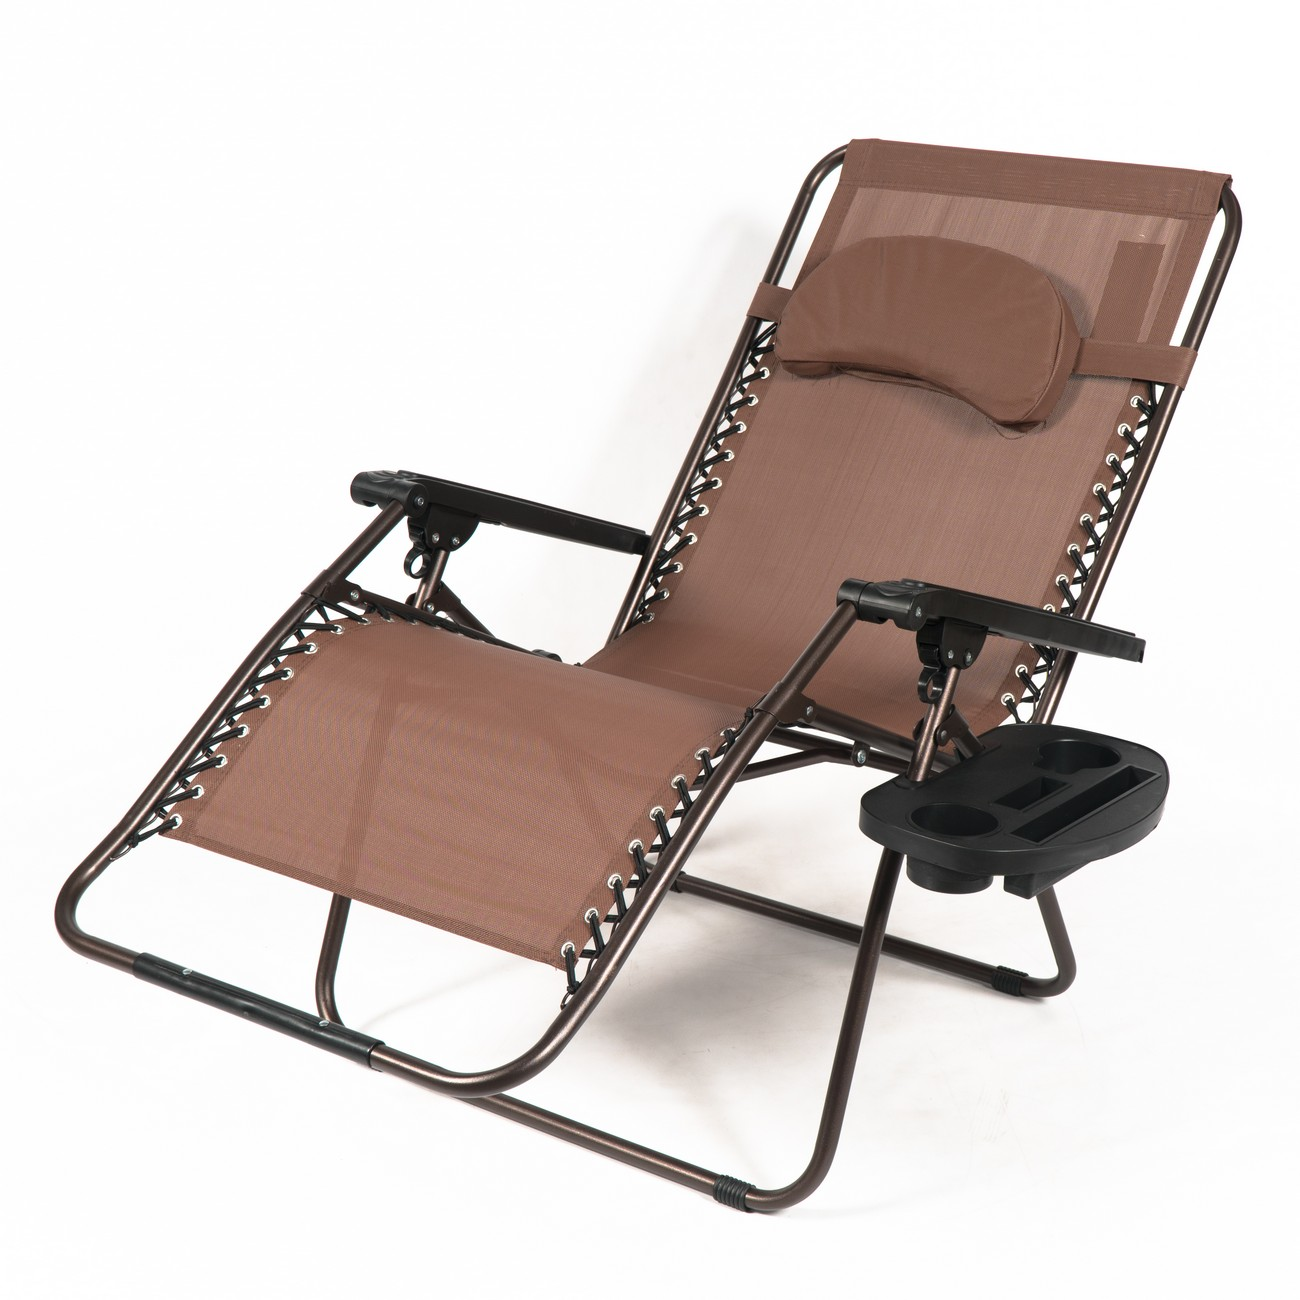 Padded Zero Gravity Chair Oversized Xl Padded Zero Gravity Chairs Folding Recliner